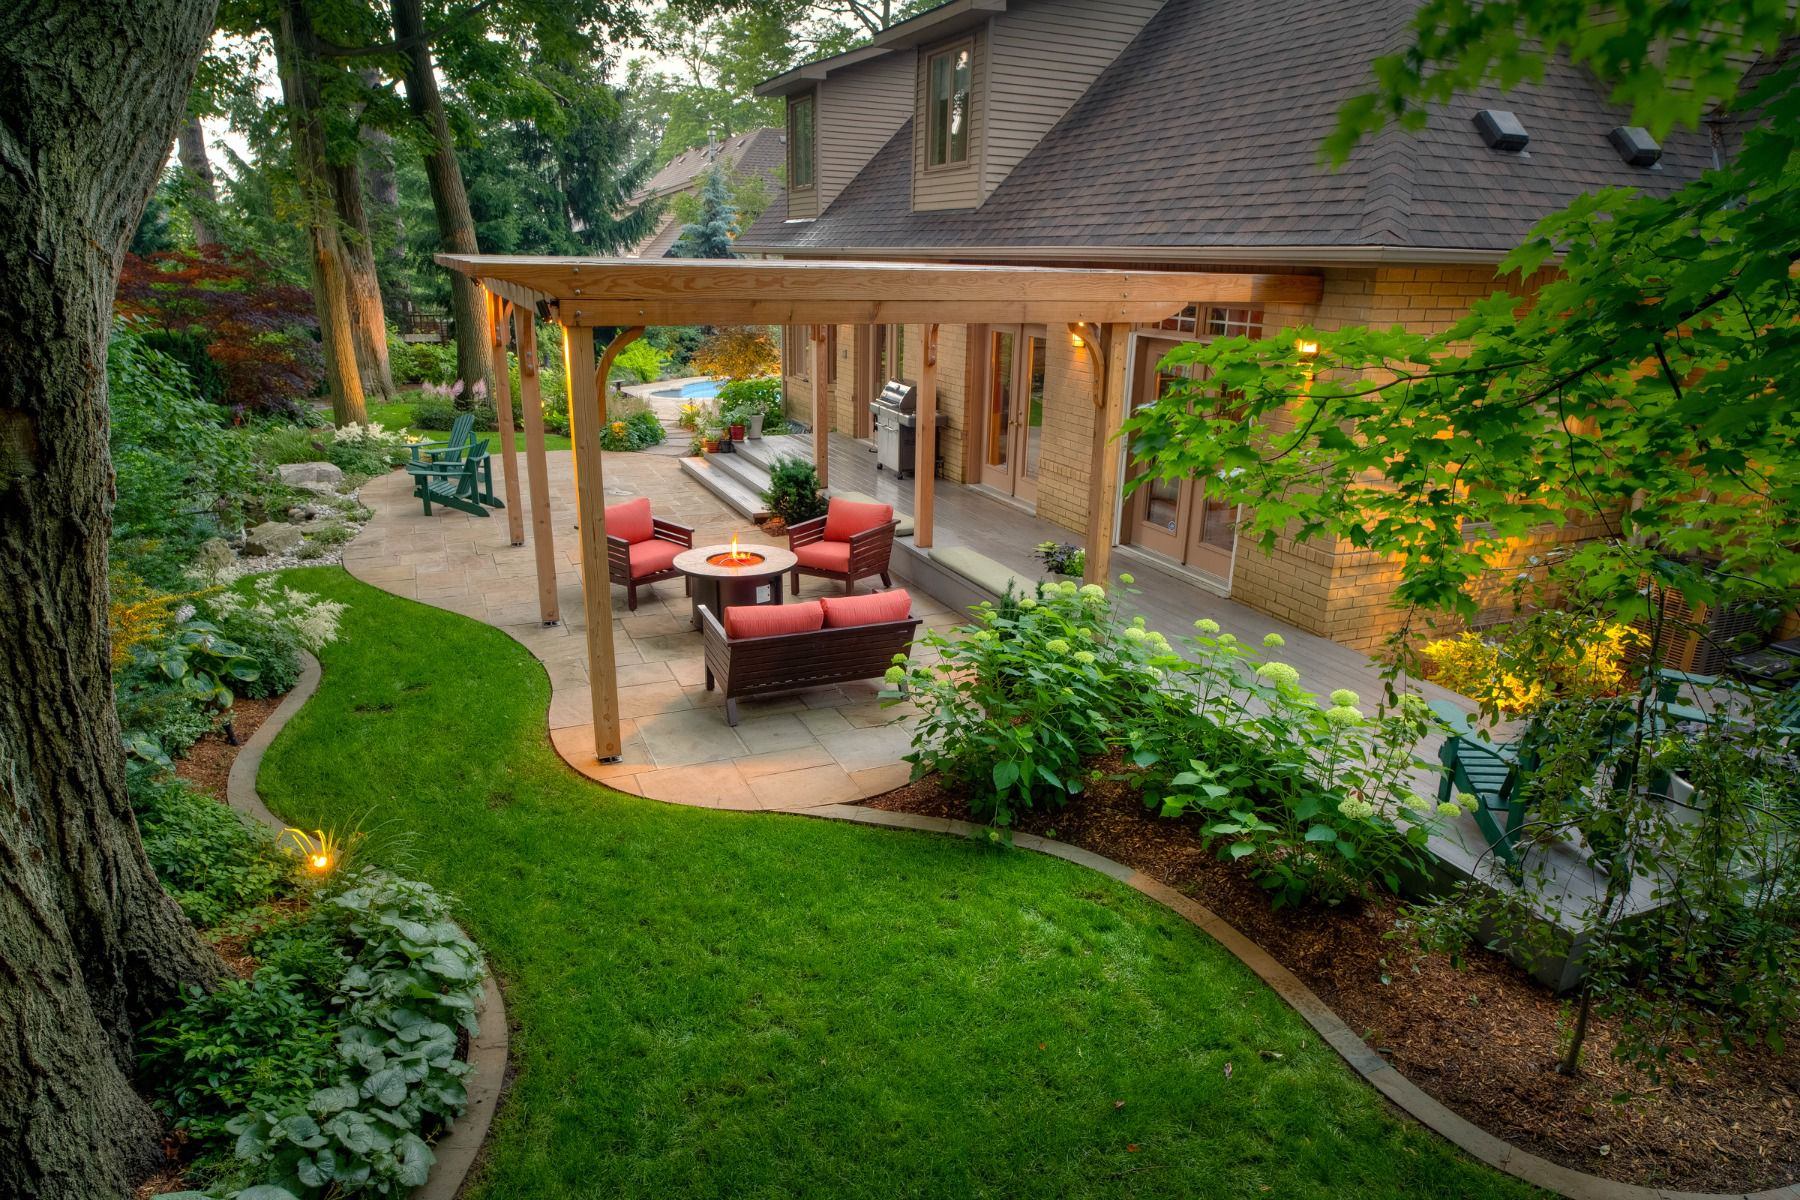 50 Backyard Landscaping Ideas To Inspire You inside Backyard Landscape Photos